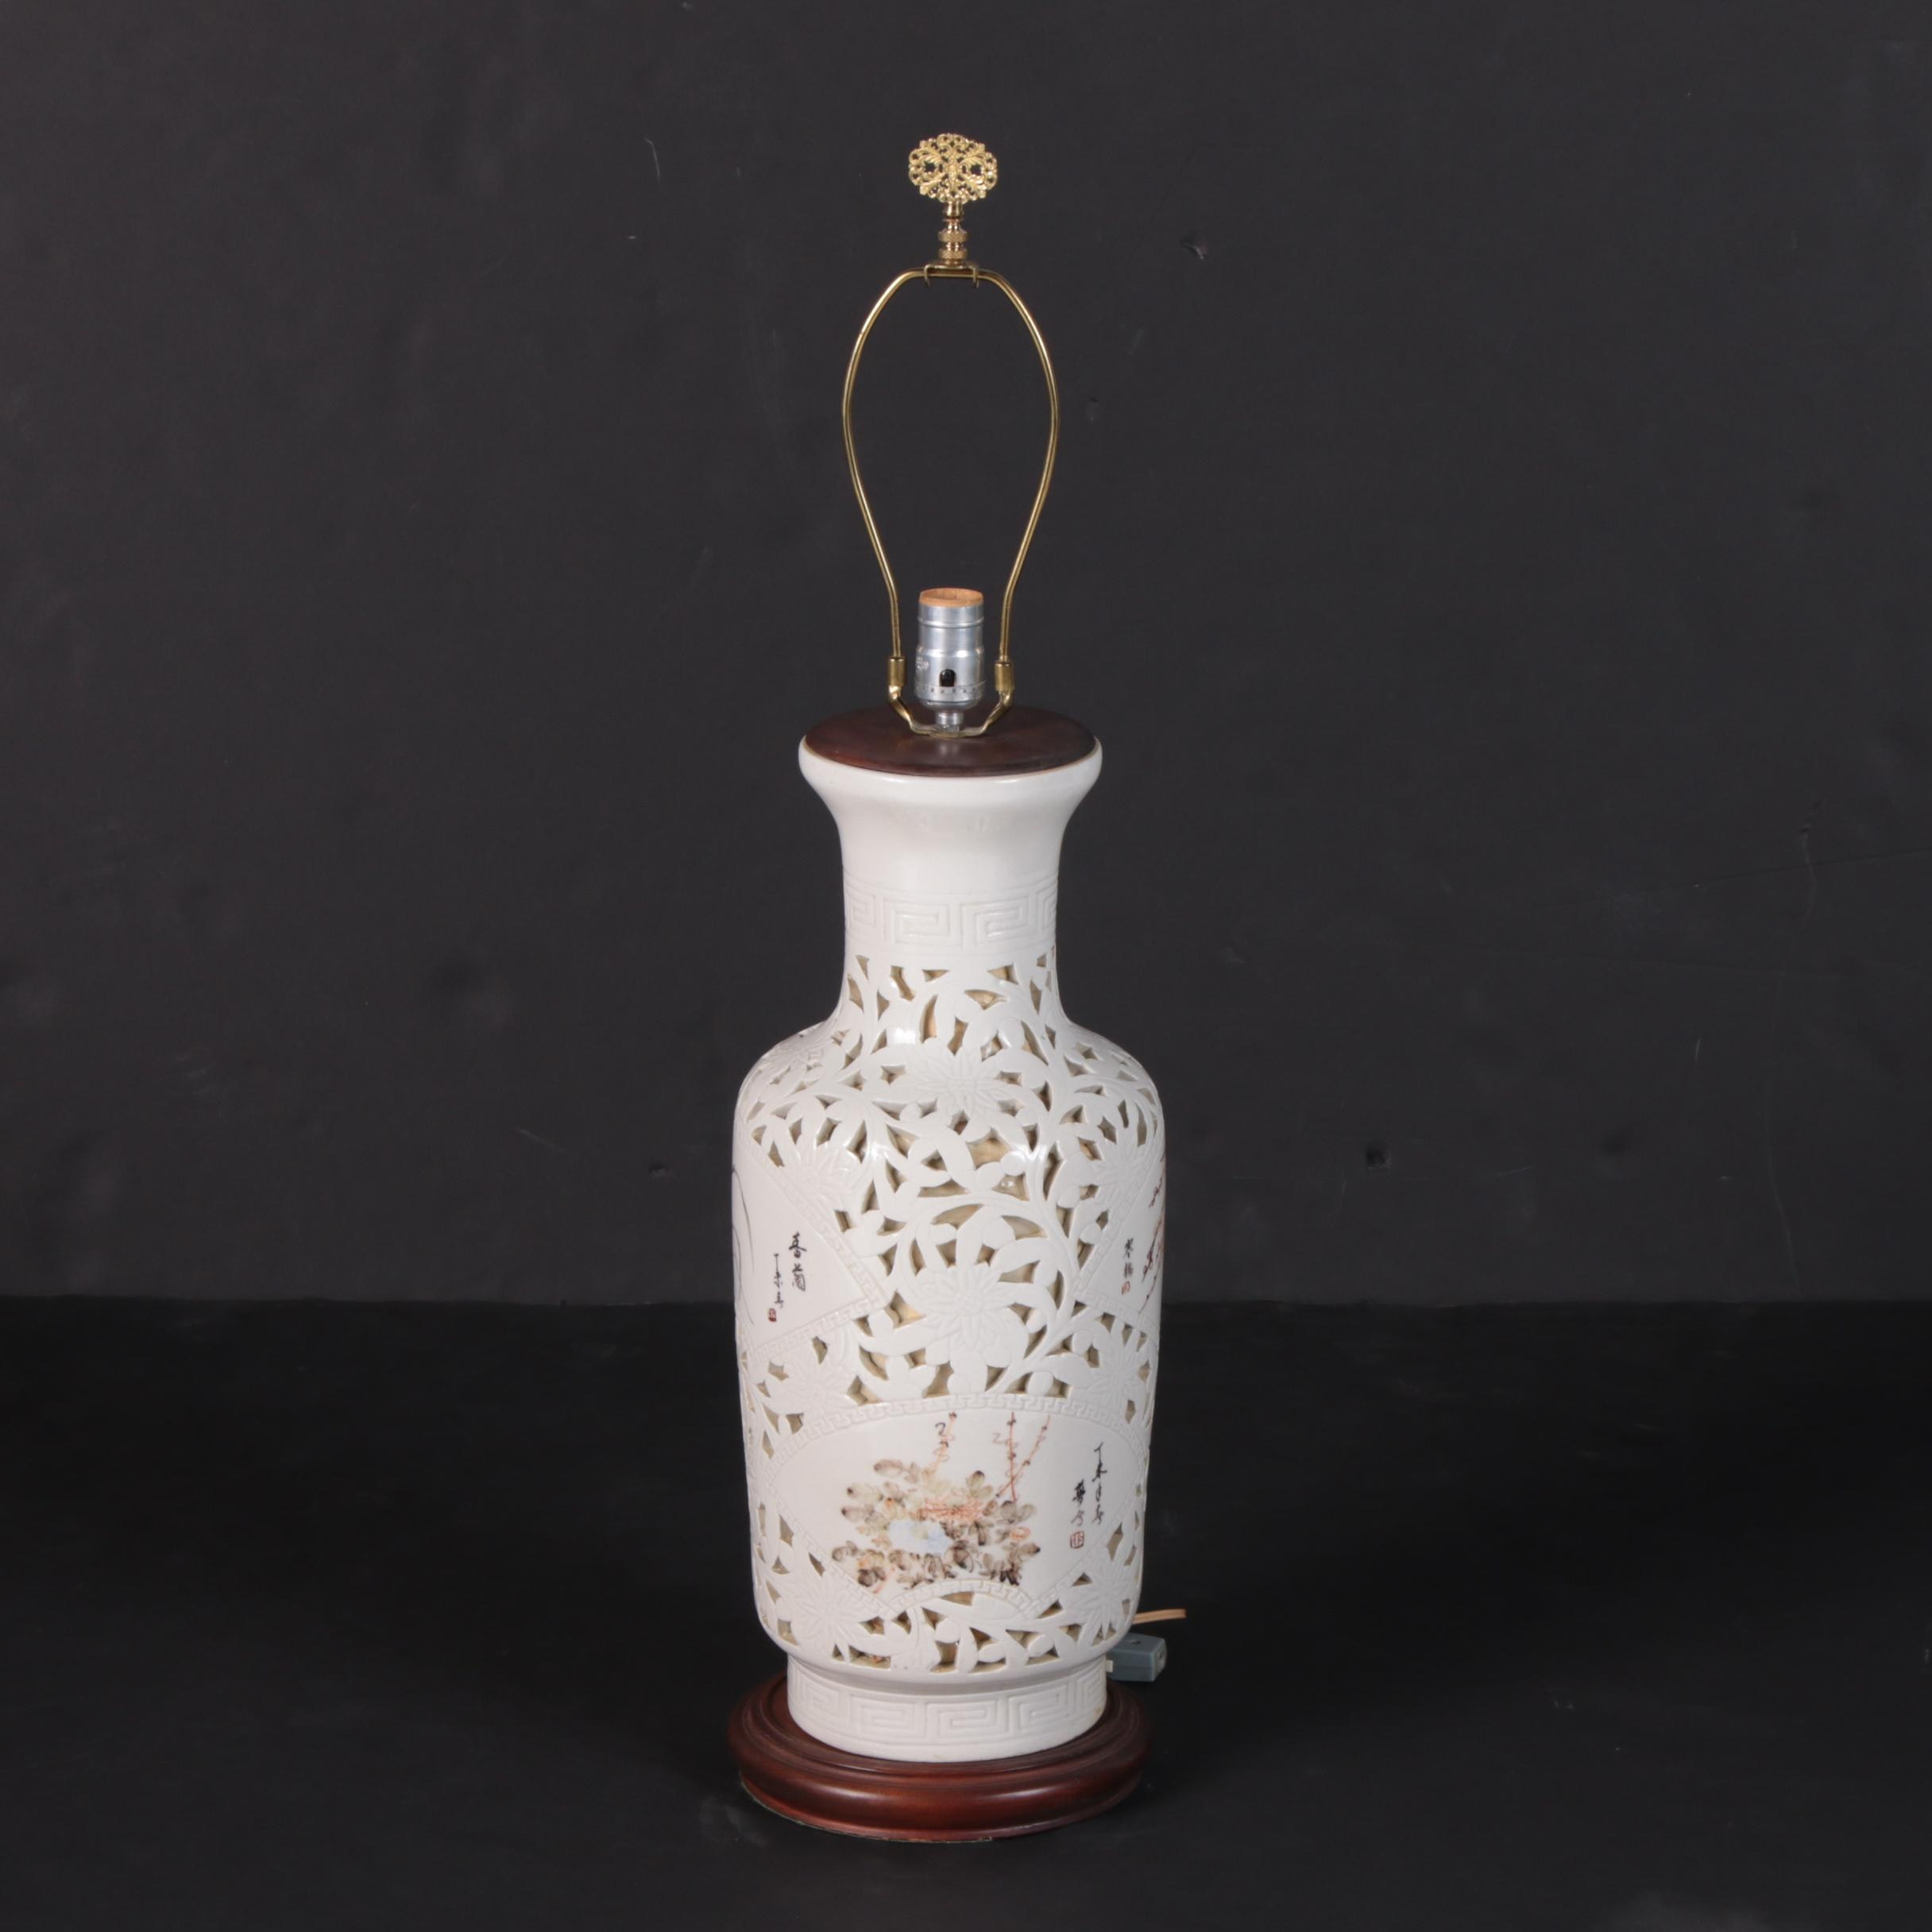 Chinese Hand-Painted Reticulated Ceramic Vase Form Table Lamp